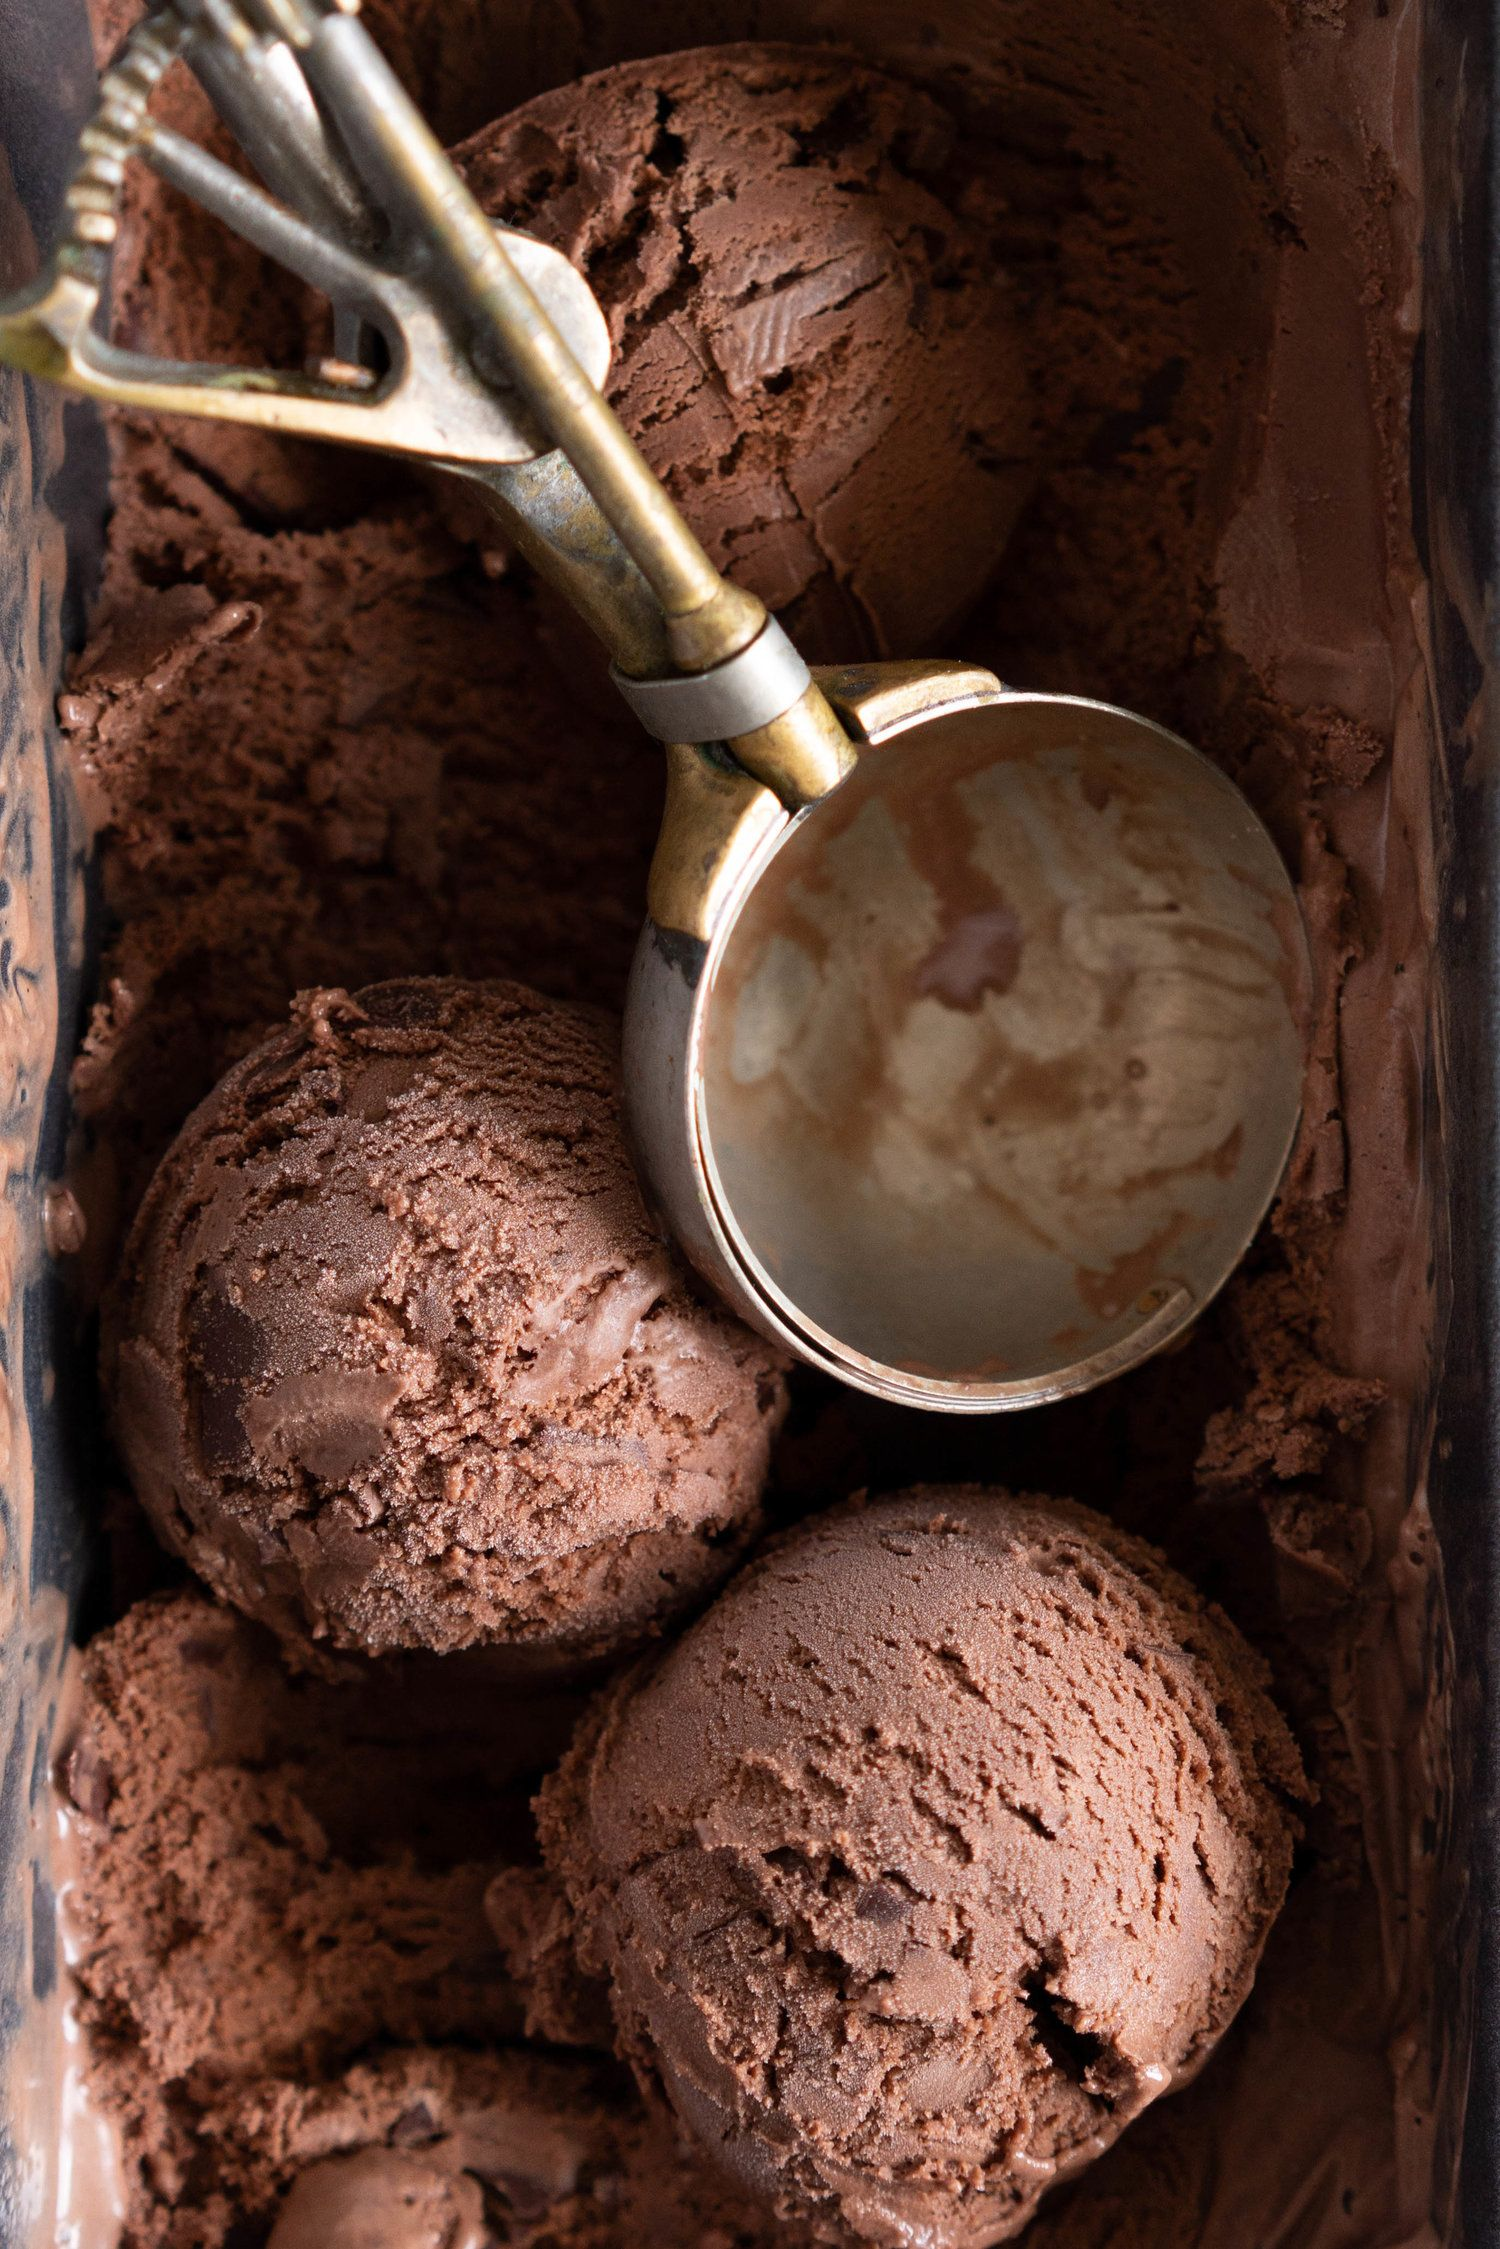 Chocolate Choux Ice Cream Sandwiches with Double Chocolate Ice Cream — Cloudy Kitchen #icecreamsandwich